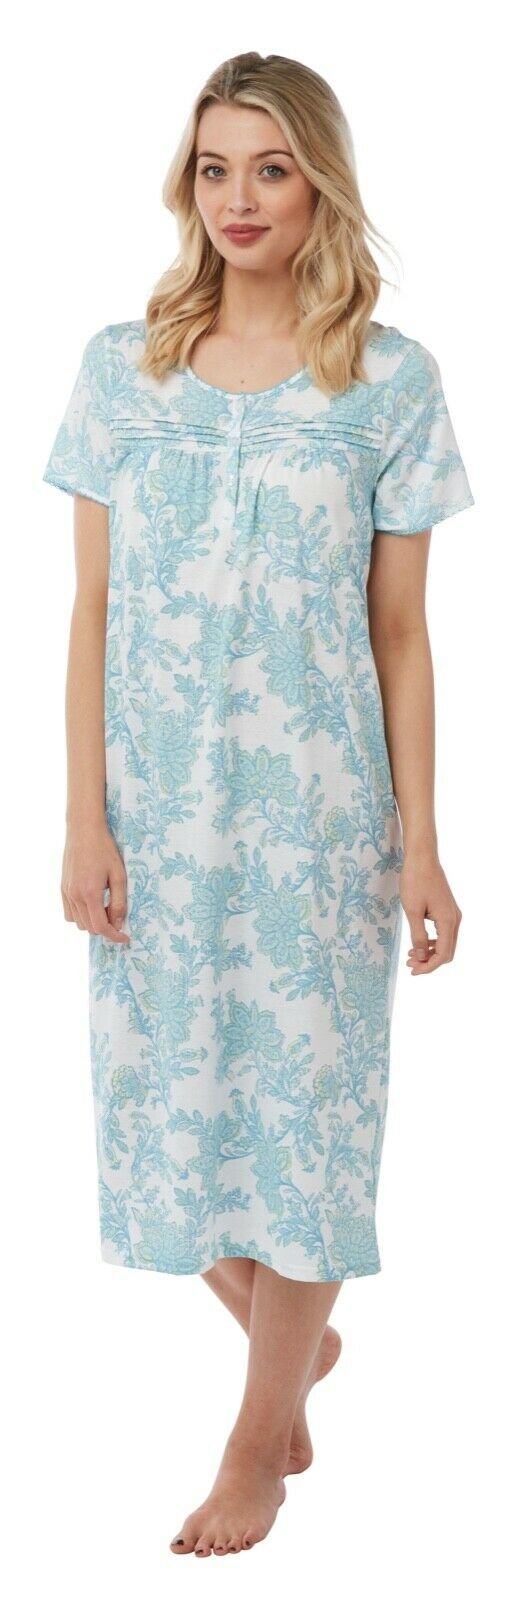 Ladies Marlon Short Sleeve Printed Nightdress